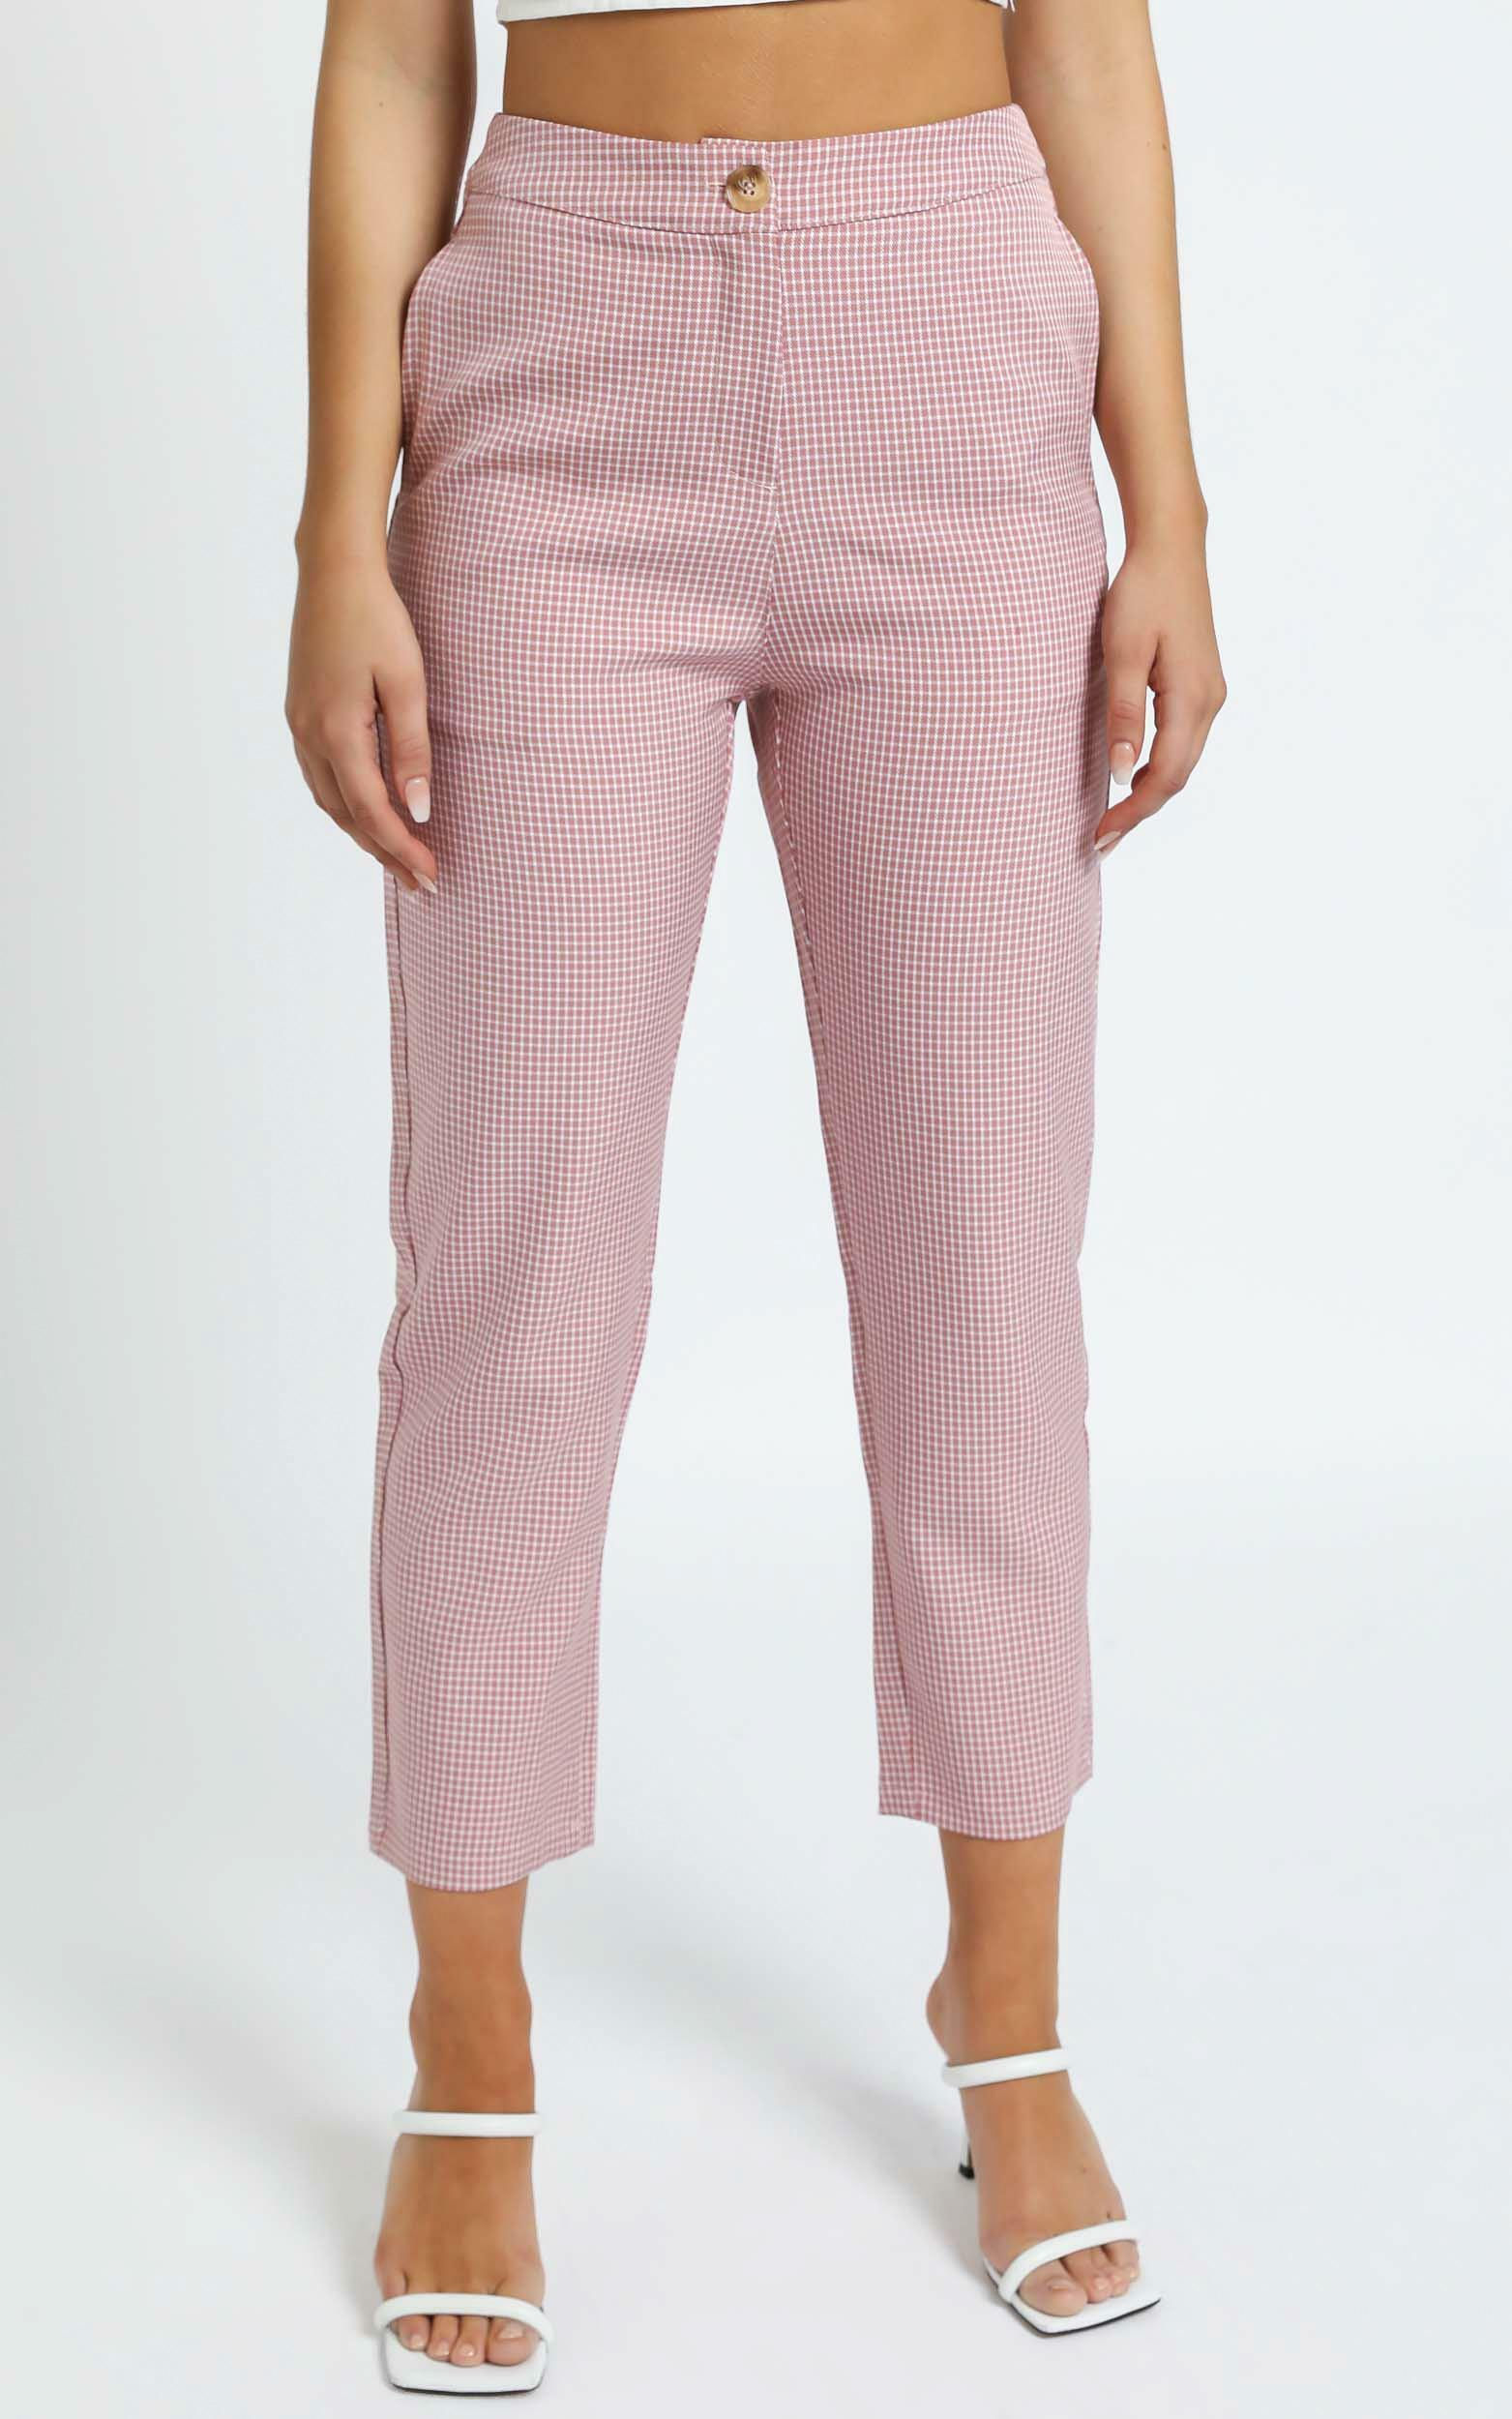 Barbina Pants in Pink Check - 12 (L), Pink, hi-res image number null